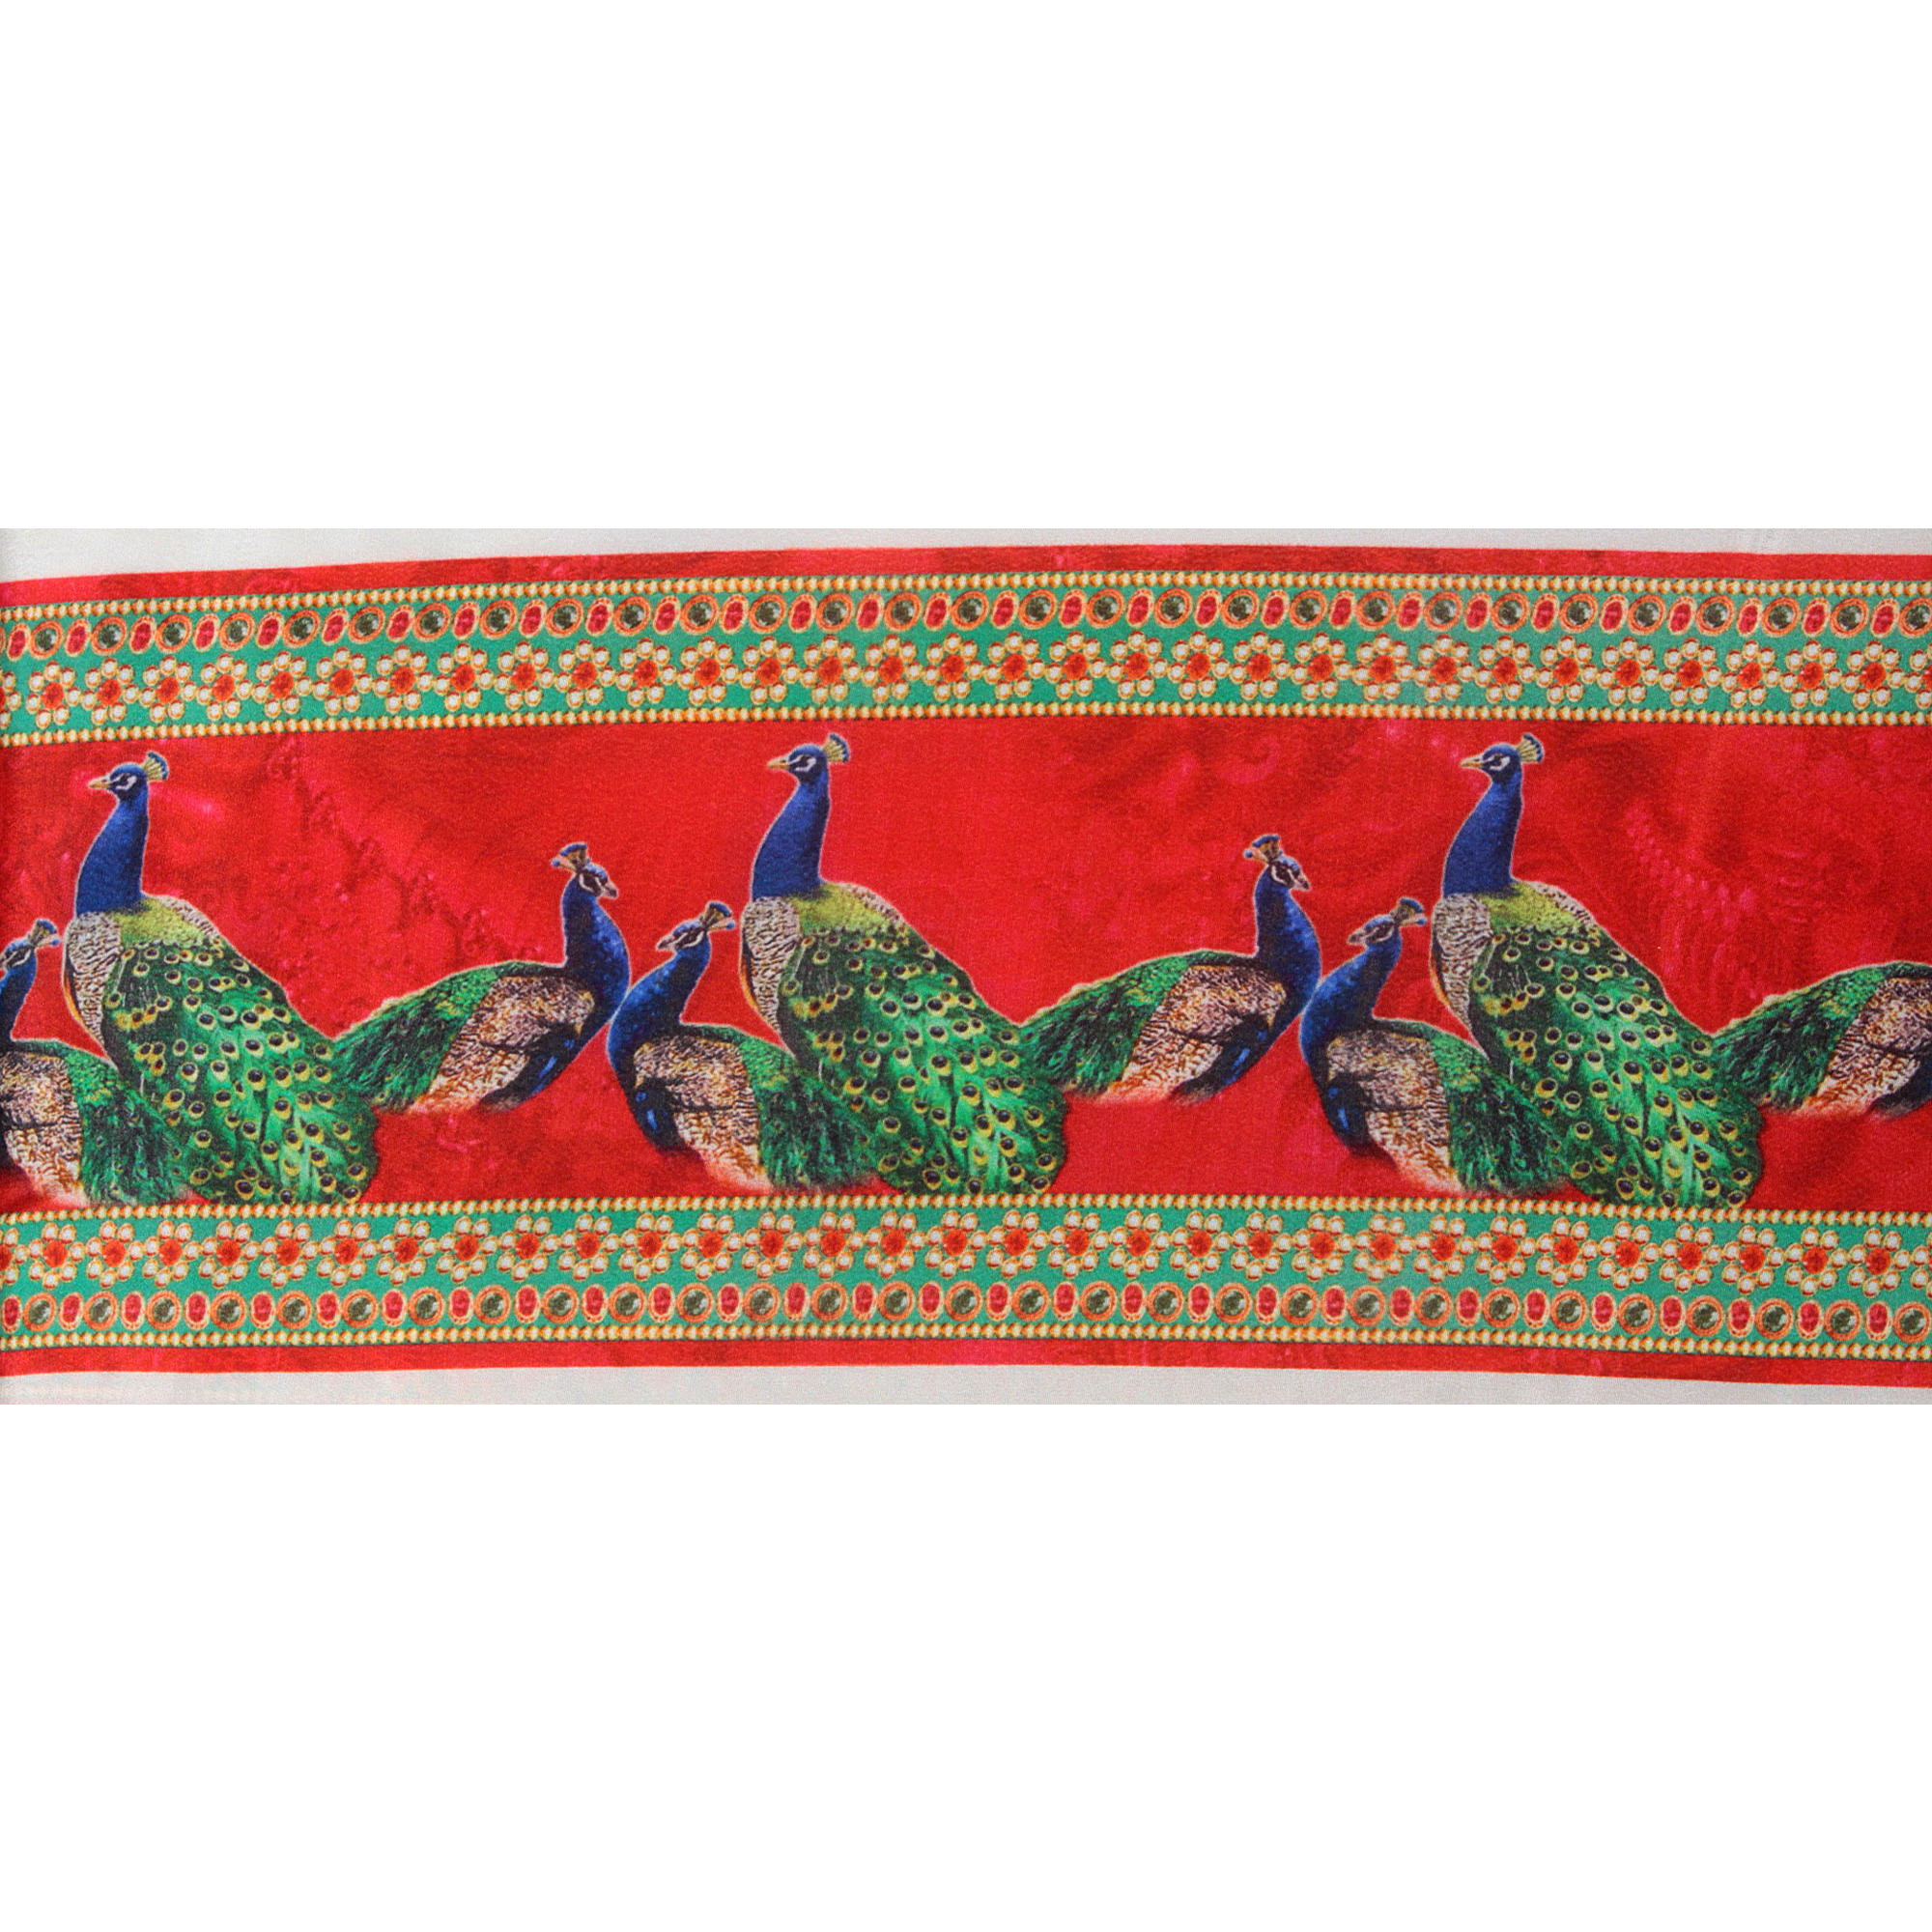 Red Fabric Border with Digital-Printed Peacocks